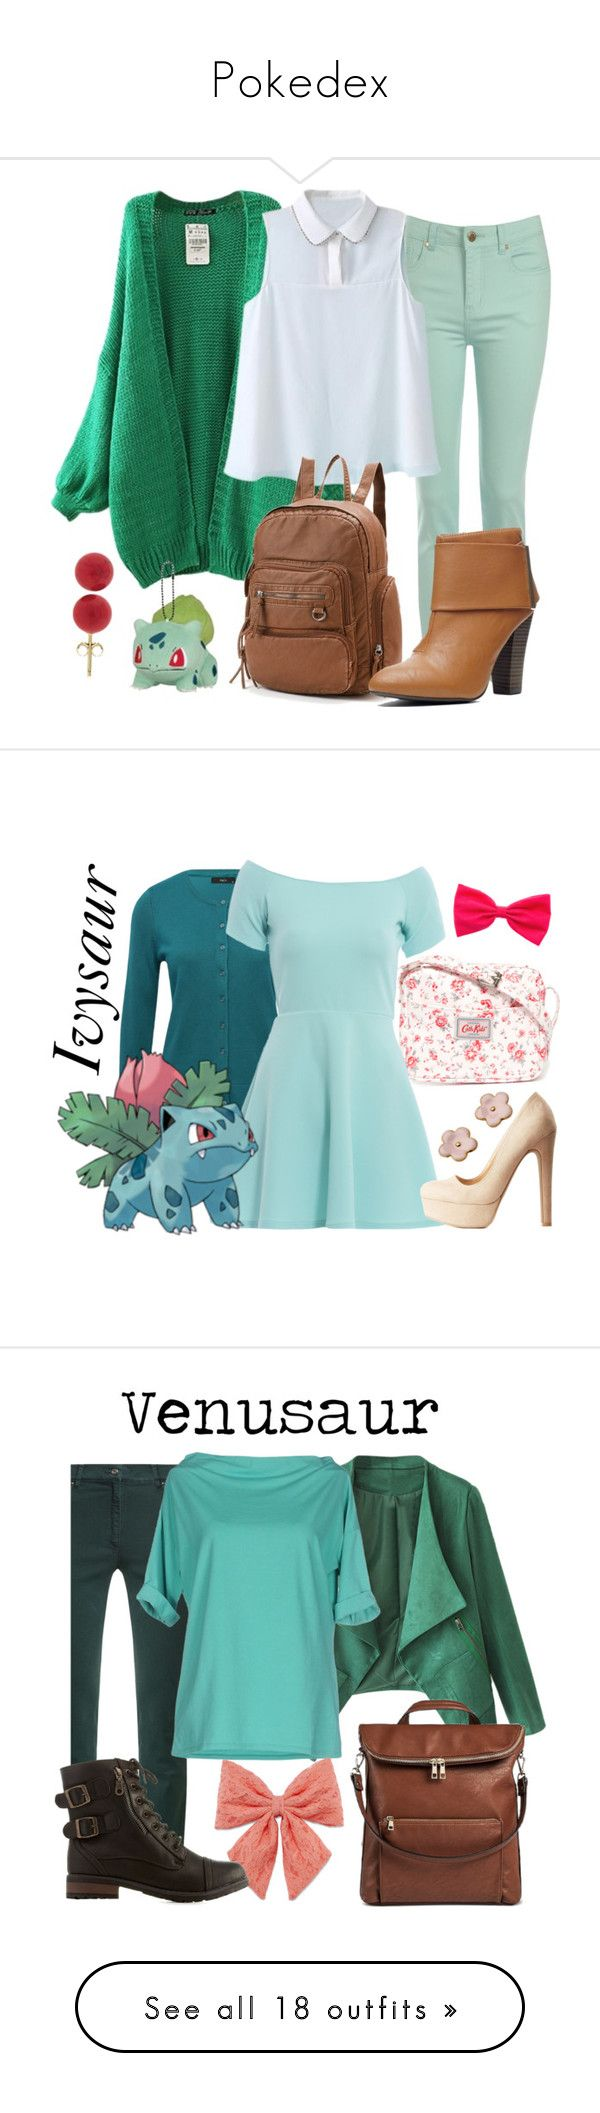 """Pokedex"" by waywardfandoms ❤ liked on Polyvore featuring Jane Norman, Mudd, Pori, Pokemon, Cath Kidston, M&Co, AX Paris, Charlotte Russe, Zerres and WithChic"